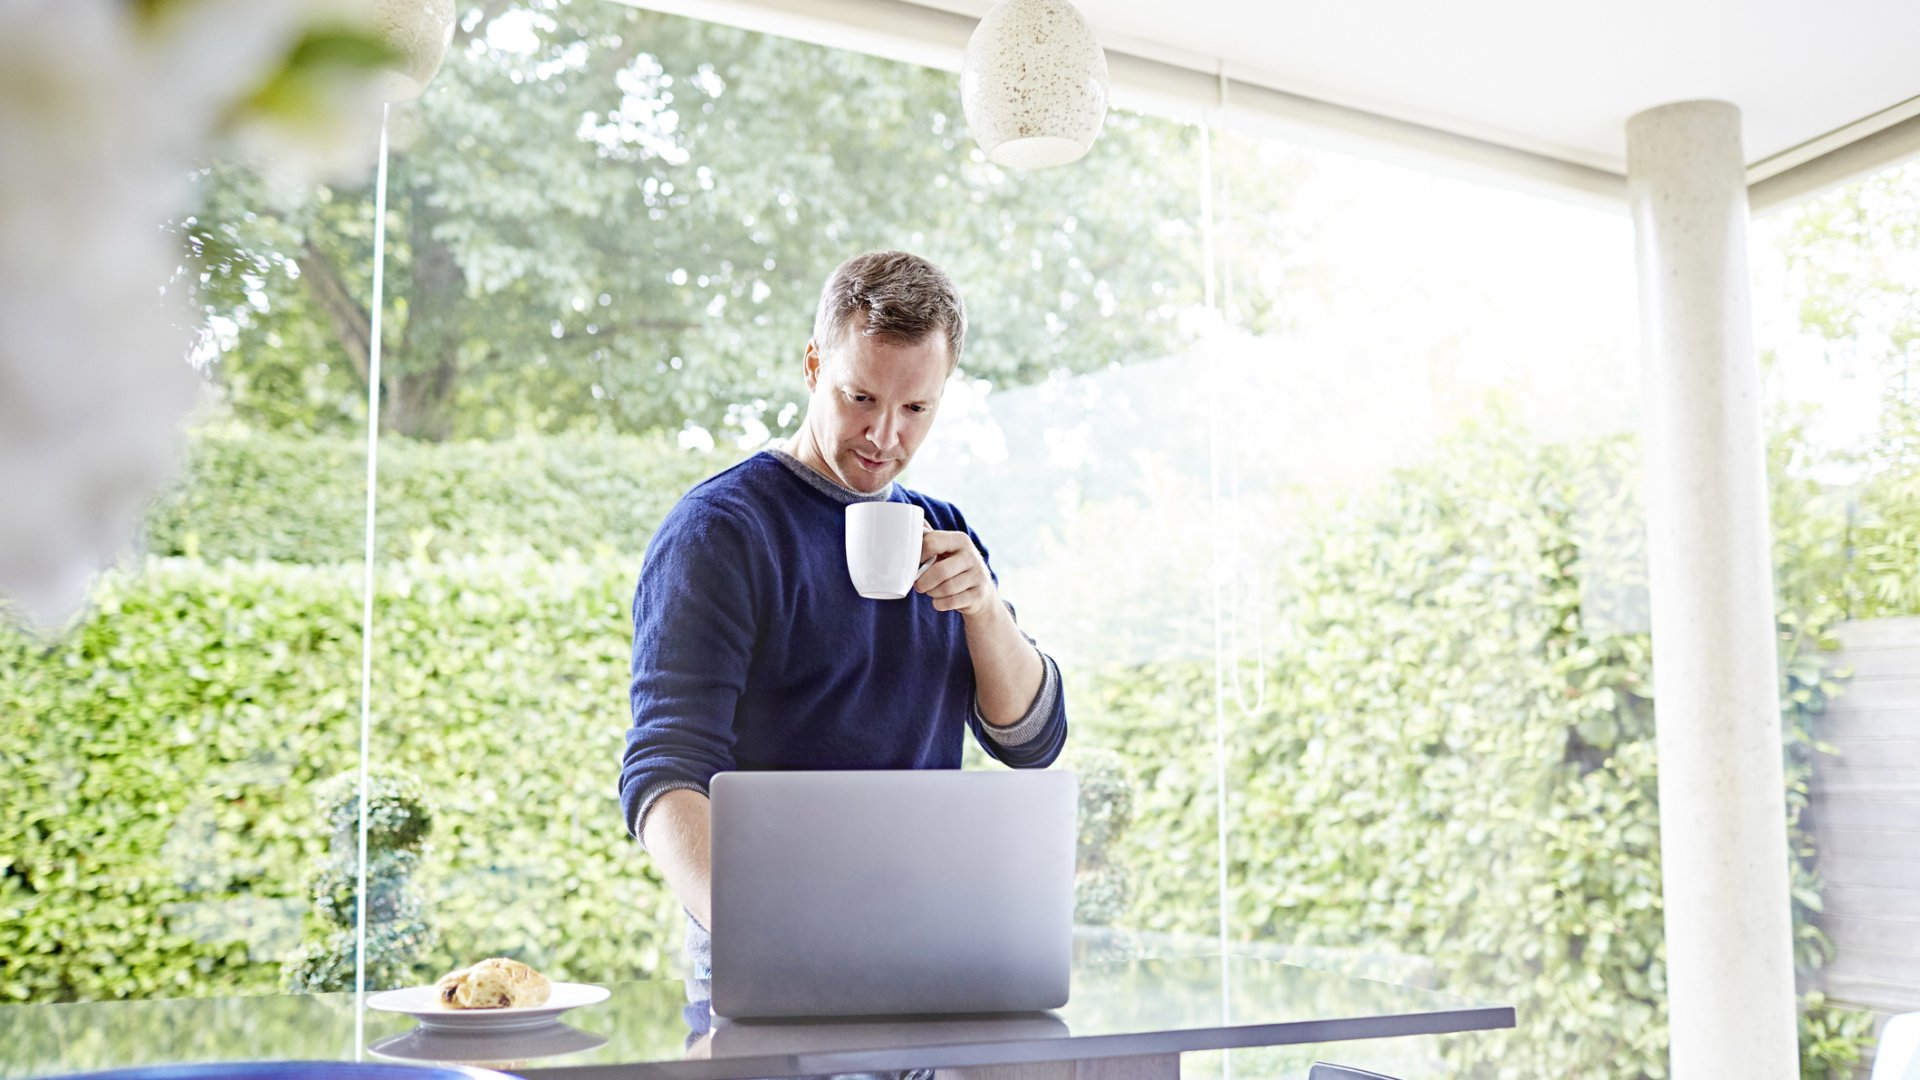 4 Simple Leadership Tips to Boost Your Productivity While Working From Home